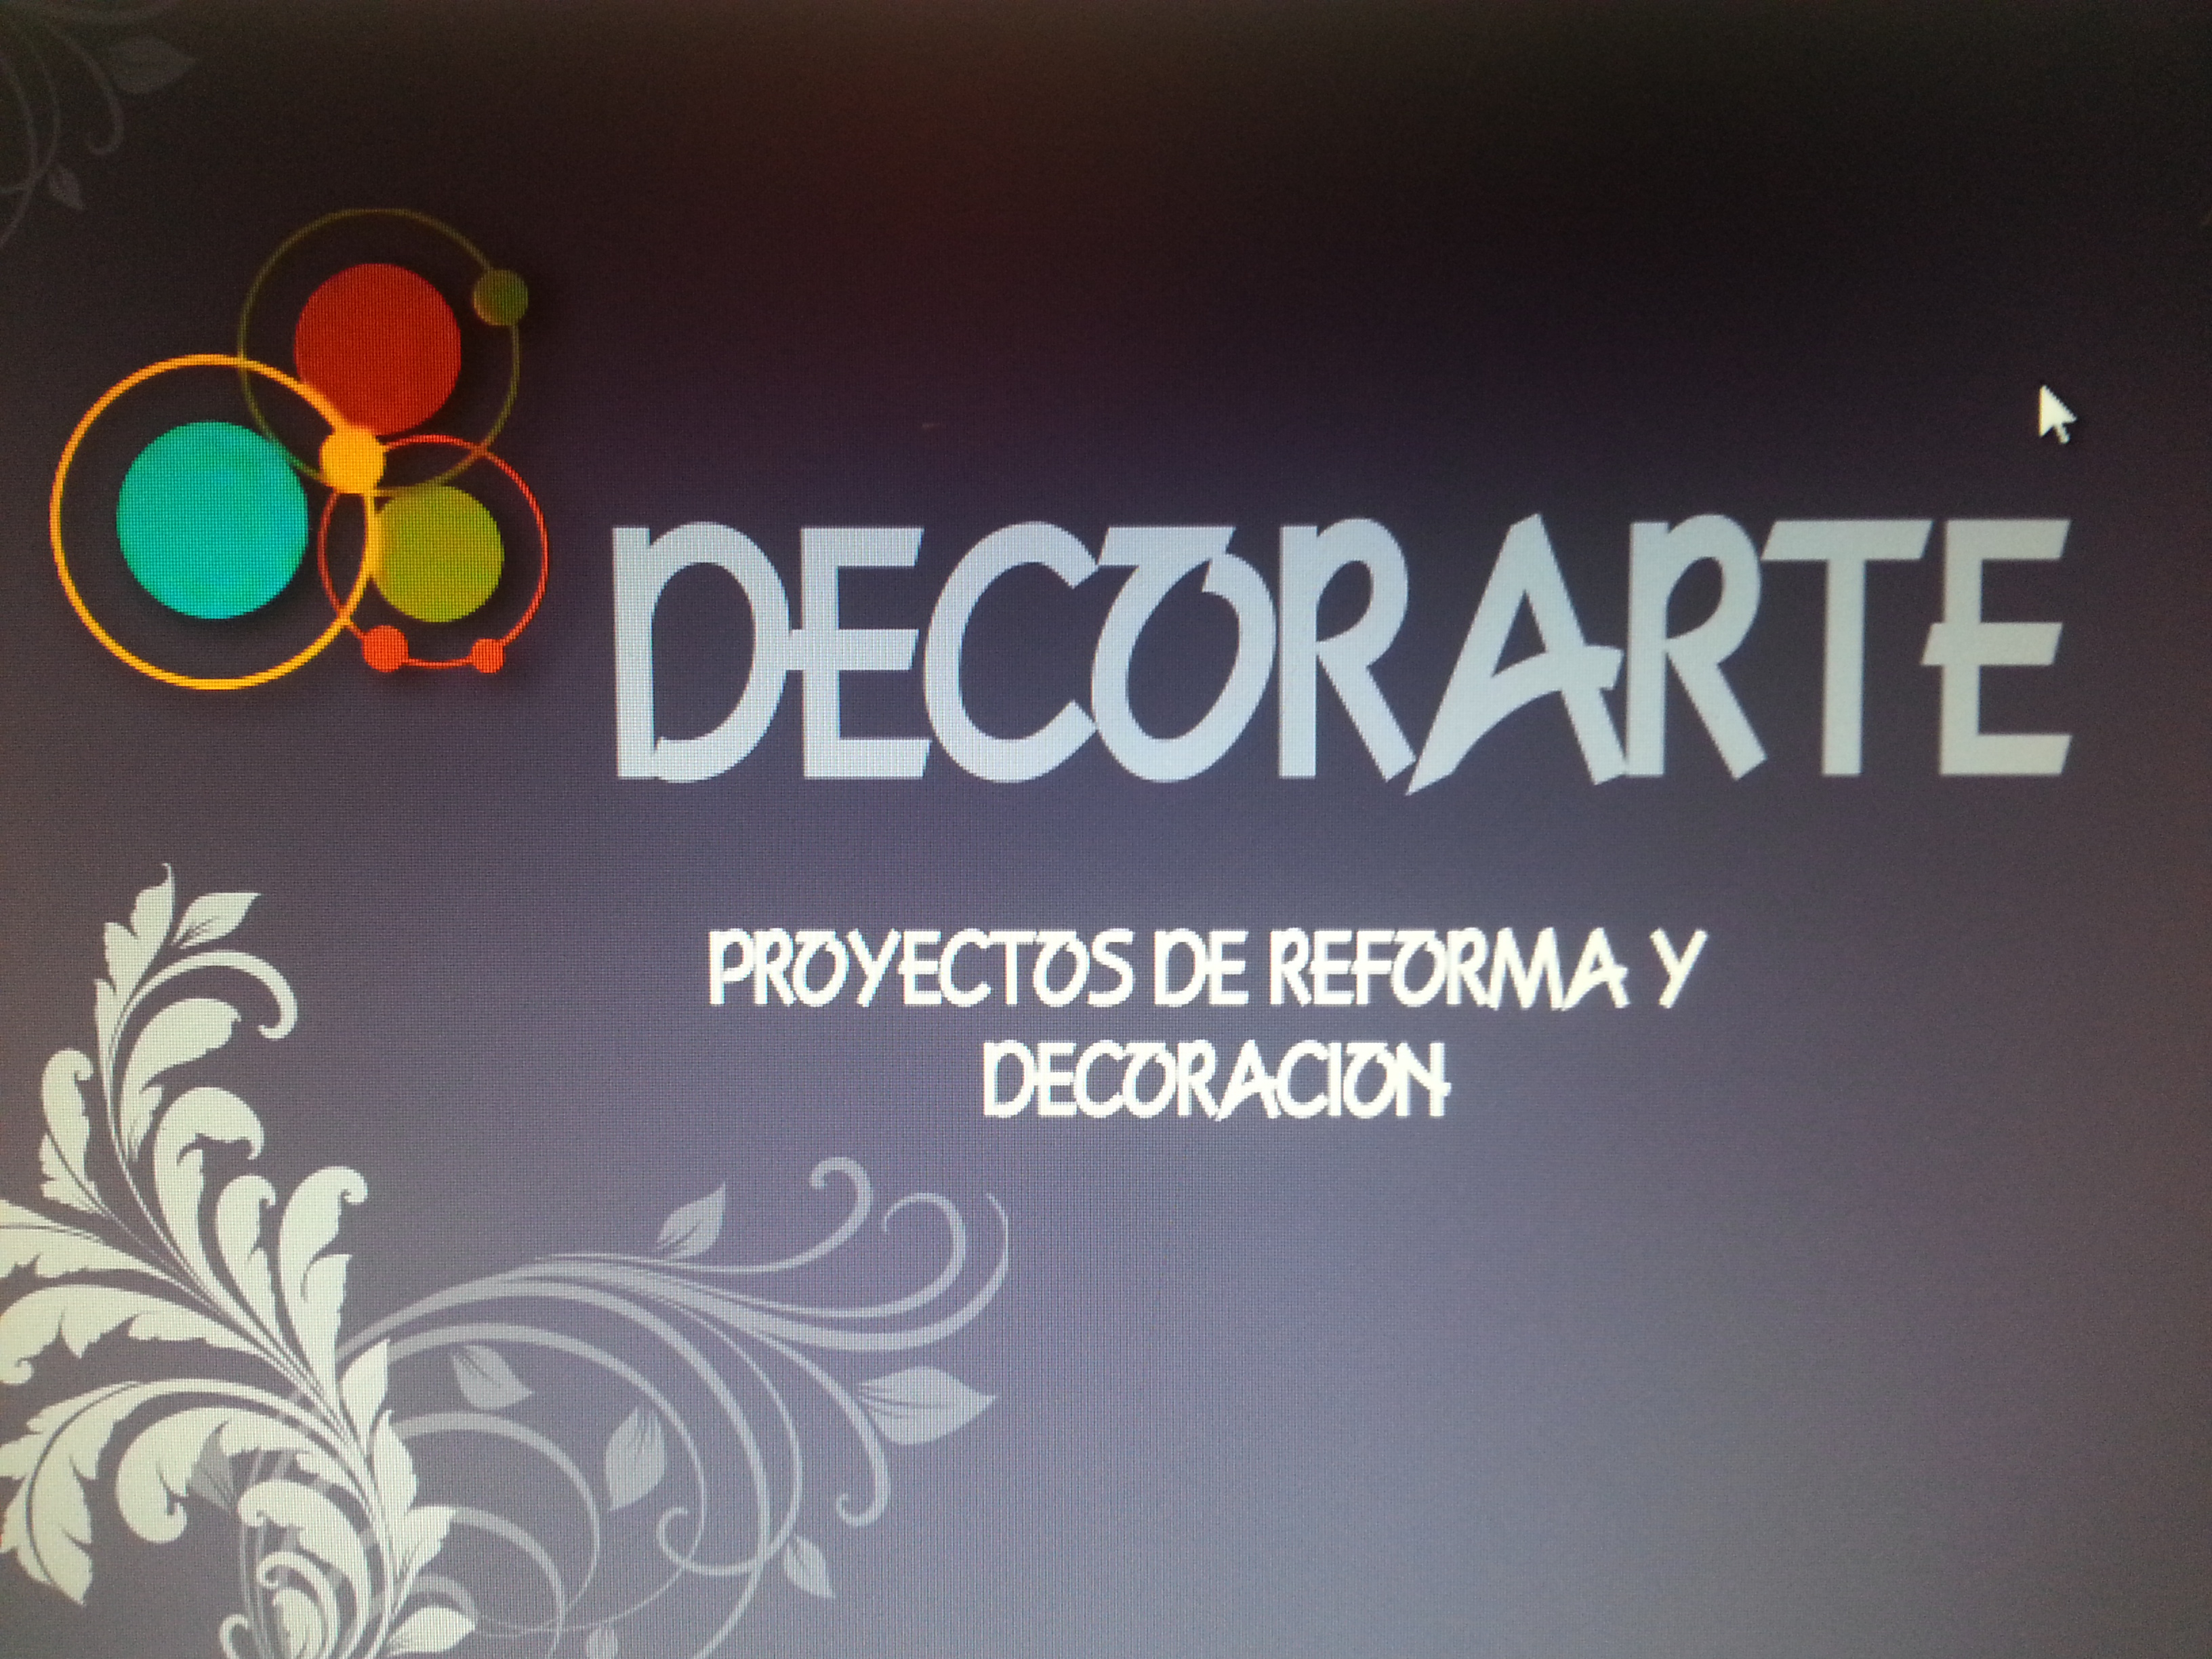 Decorartegarrigues